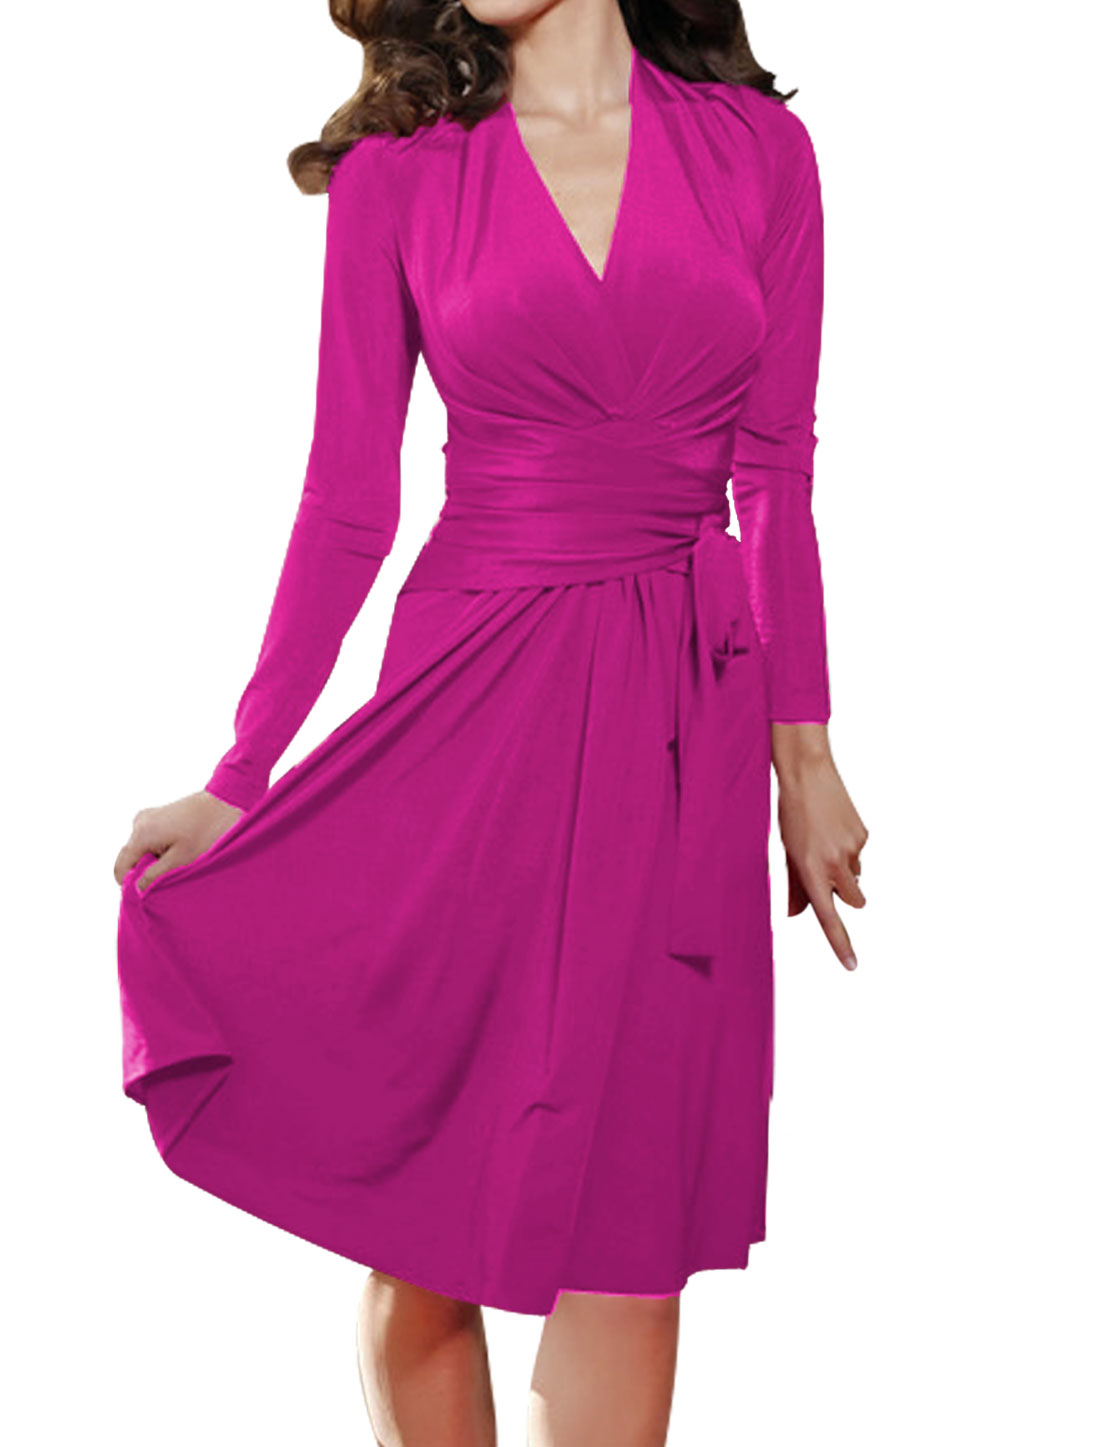 Women Crossover Deep V Neck Self-Tie Strap Waist Dress Fuchsia L